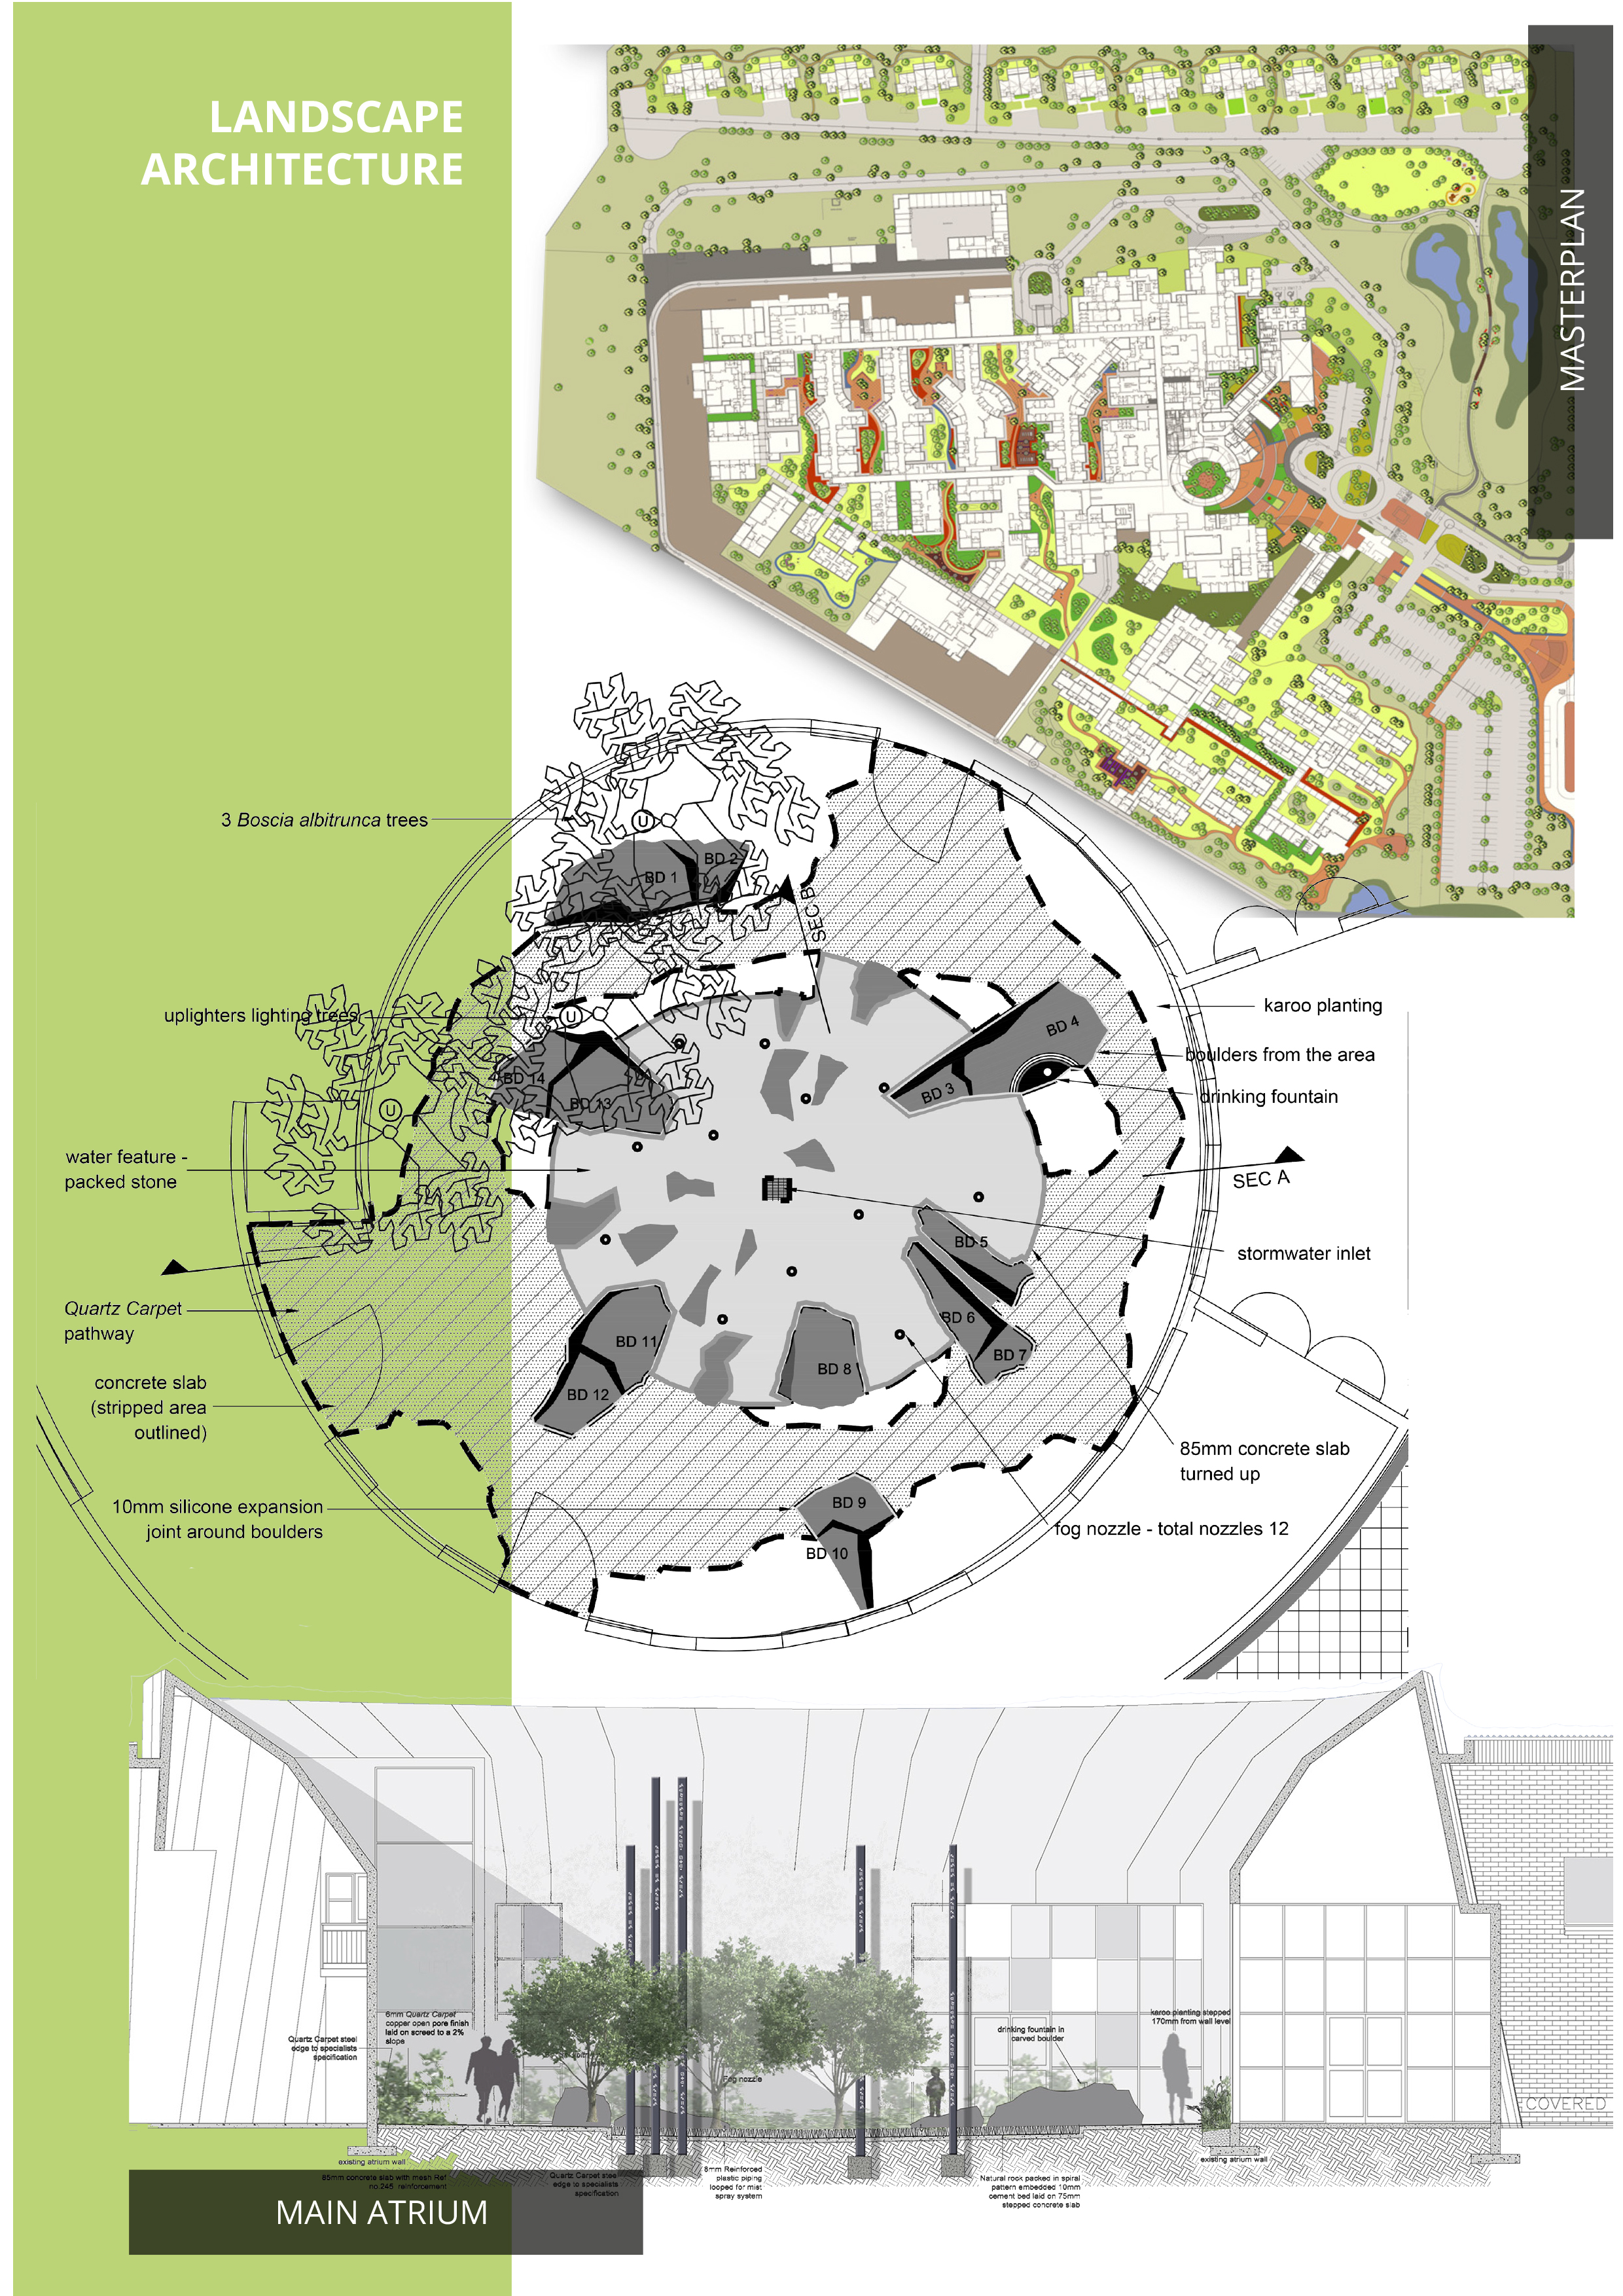 De Aar Hospital - The landscape design approach is contextual, drawing on the landscape, culminating in a product of culture, topography, vegetation, climate and ecological processes. From a landscape perspective we aimed to emulate the natural vegetative response to climatic cycles, which resulted in seasonal variation and reduced maintenance, thereby ensuring a sustainable project.The landscape forms a series of interconnected outdoor rooms that complement existing buildings and answer to the needs of users. The landscape responds to functional aspects of the site and the users. The design seeks to create human-scale therapeutic spaces that contribute to the healing processes that are fundamental to medical institutions. The design replicates and re-establishes ecological systems to increase biodiversity through habitat creation. Such an approach moreover promotes sustainability in terms of implementation and long-term maintenance.